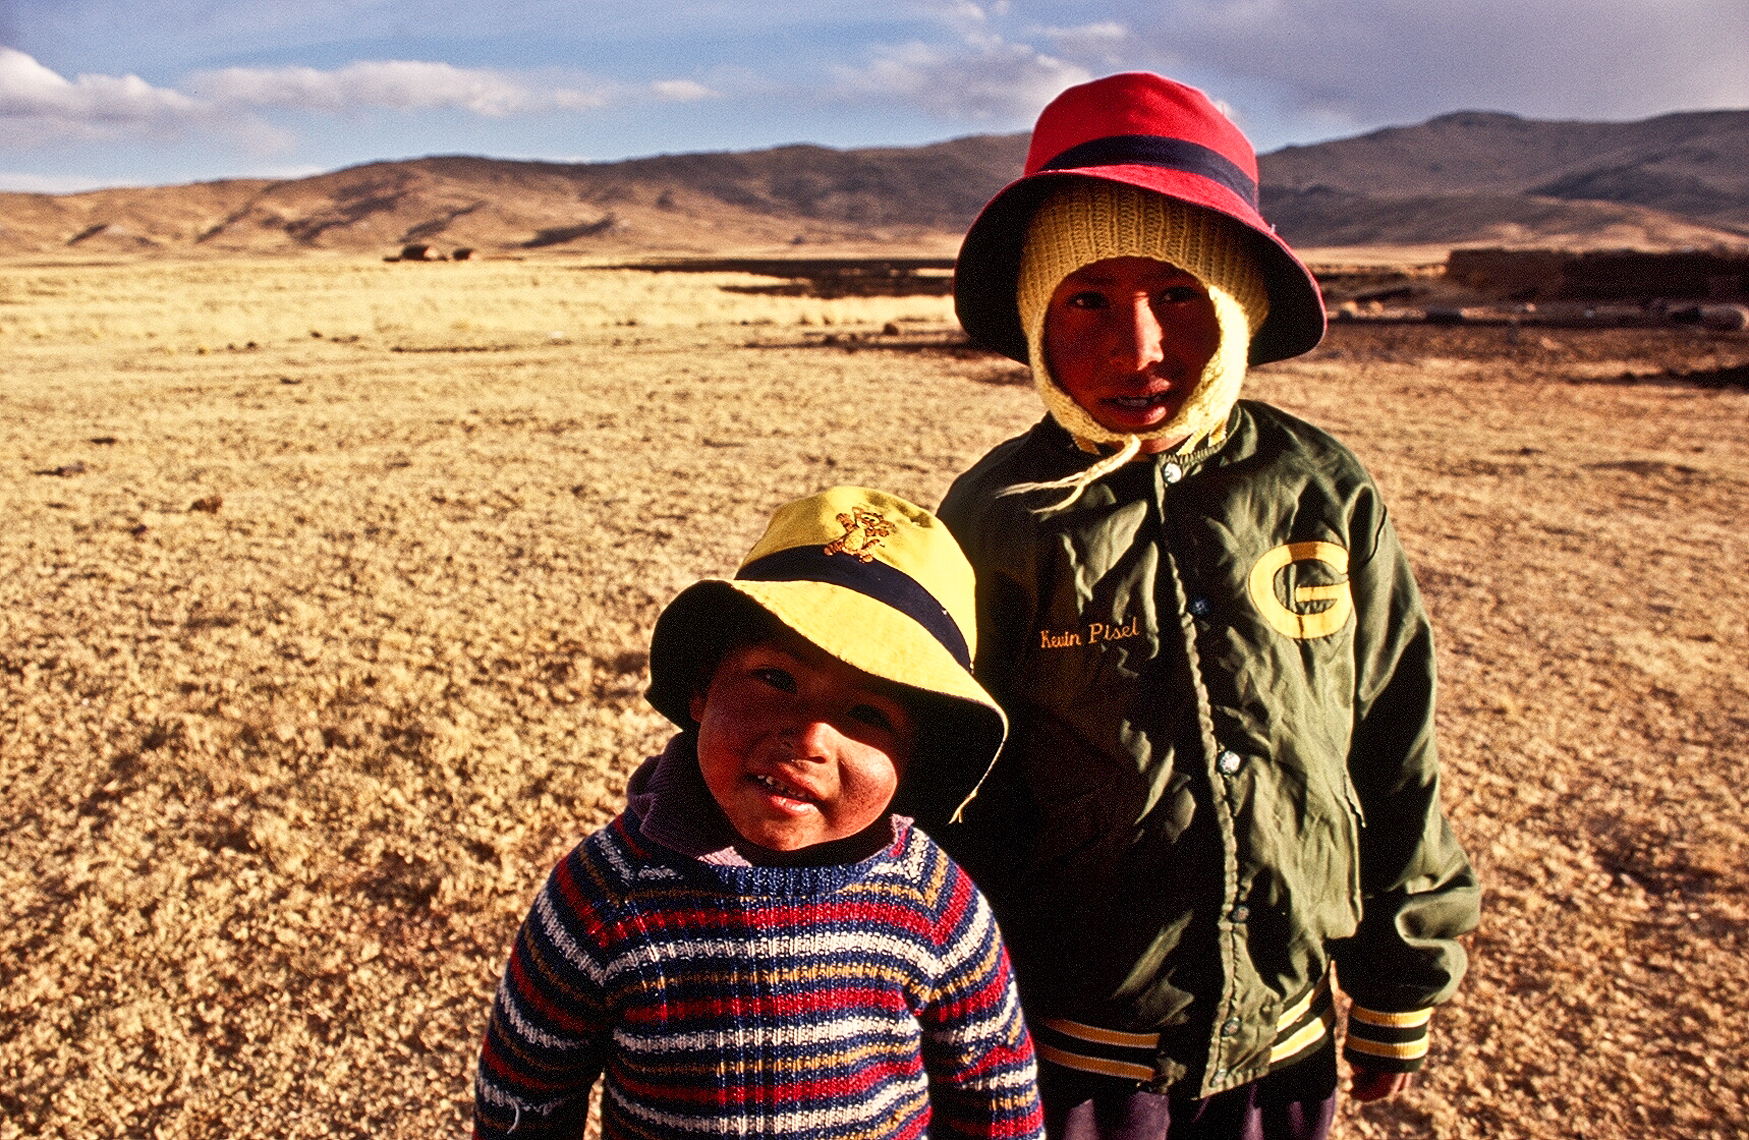 Peru boys in field.jpg